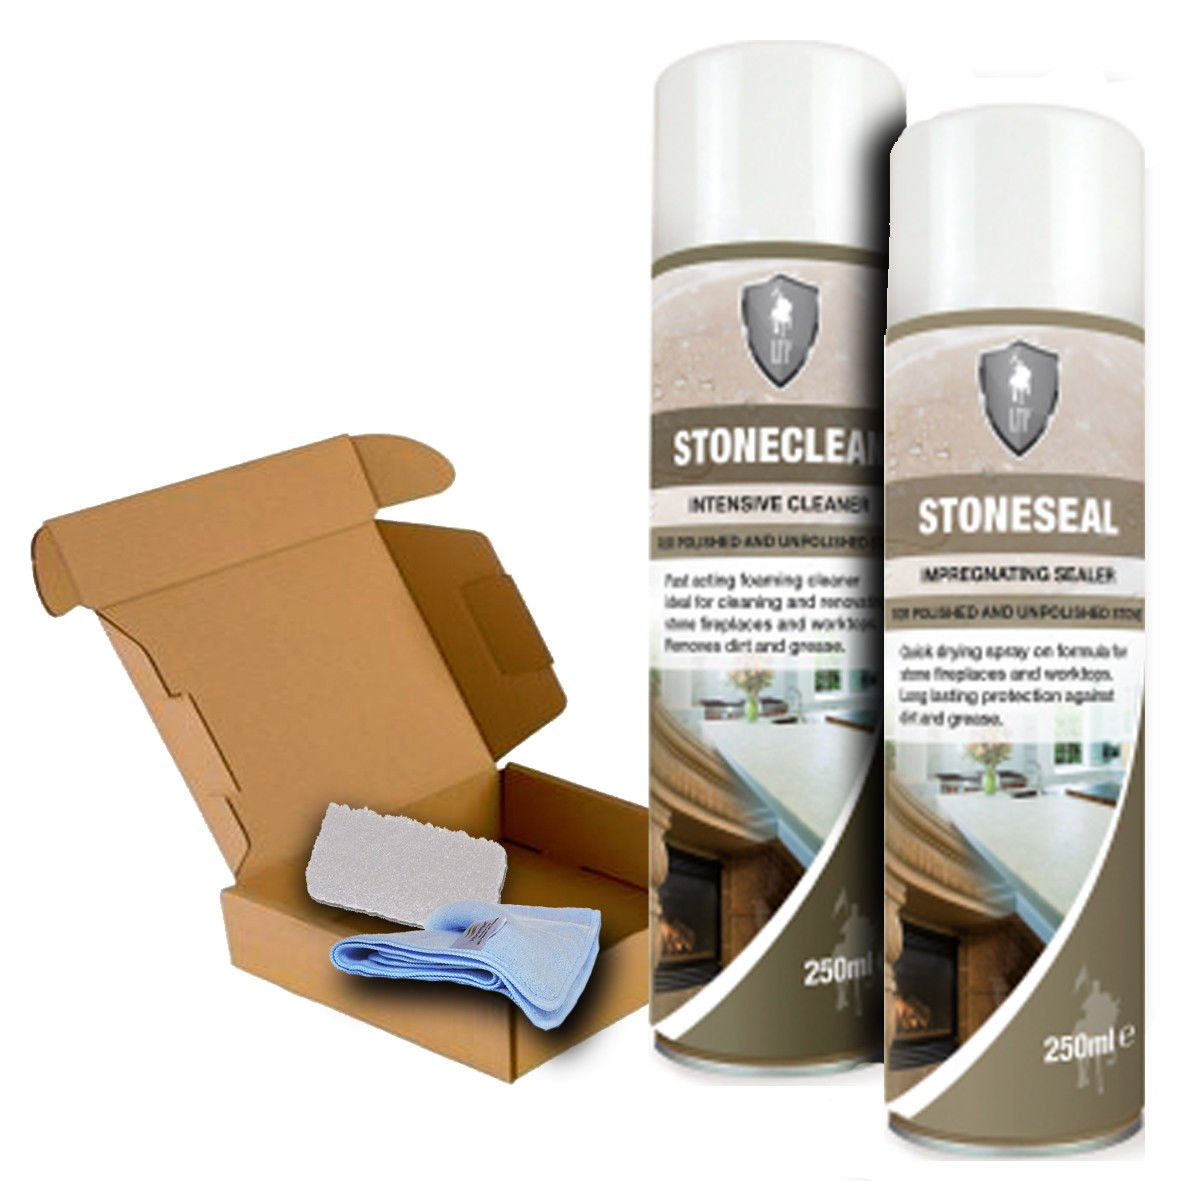 LTP Stone Care Set for Fireplace and Worktops - Stoneclean, Stoneseal, Pad & Cloth